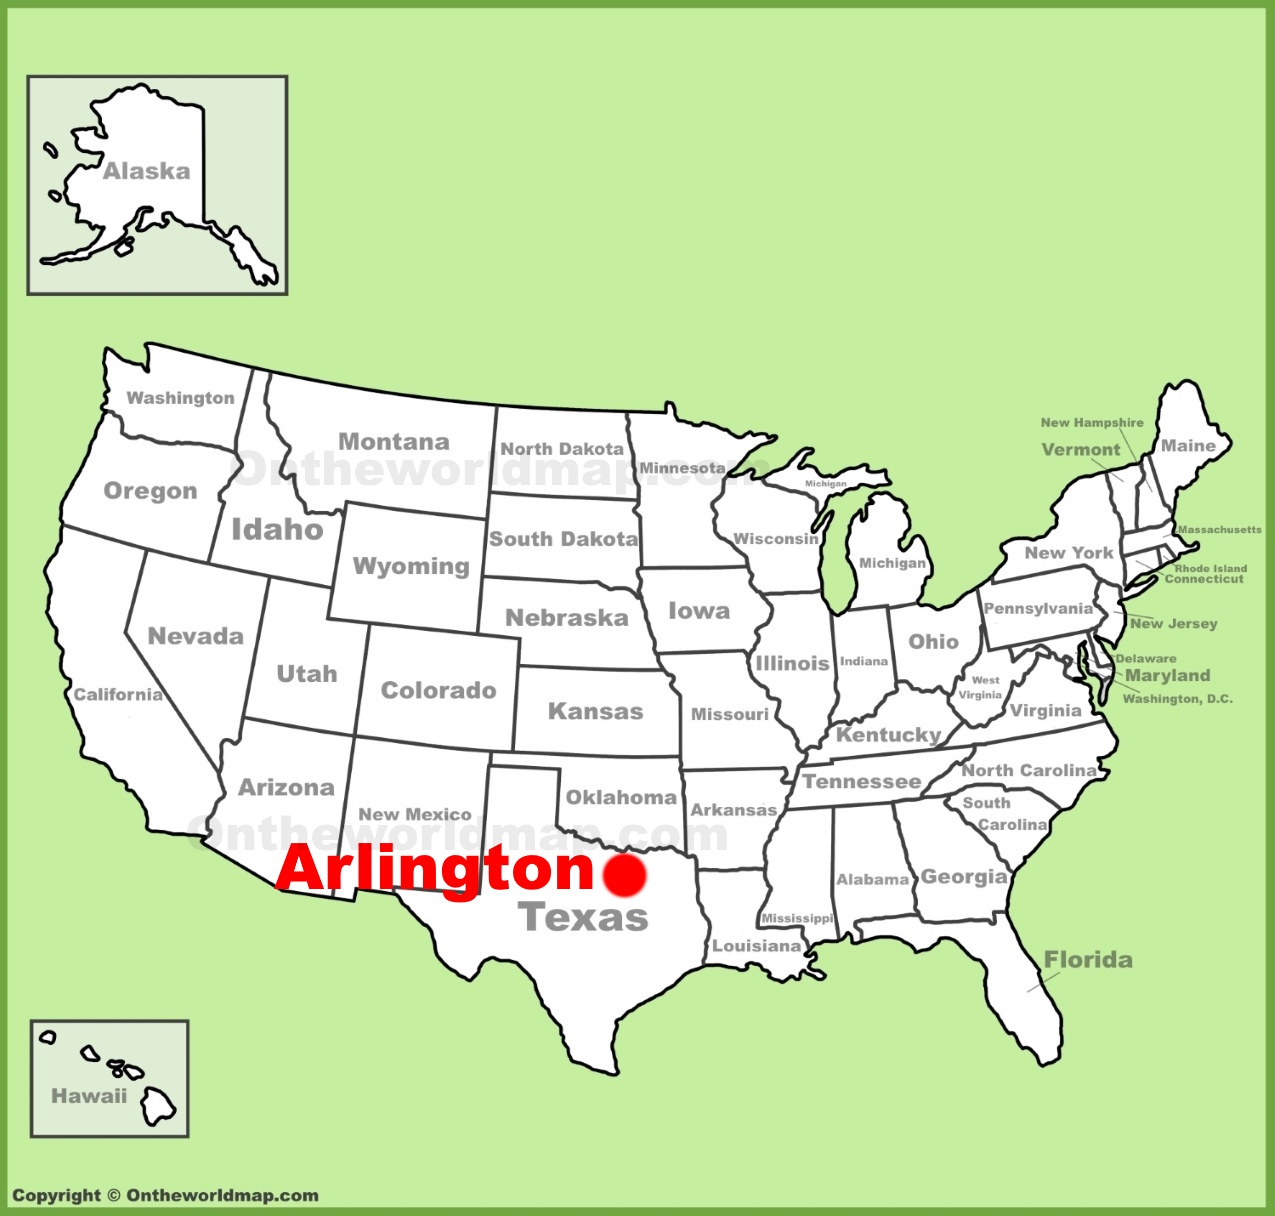 Map Of Arlington Texas.Arlington Texas Location On The U S Map